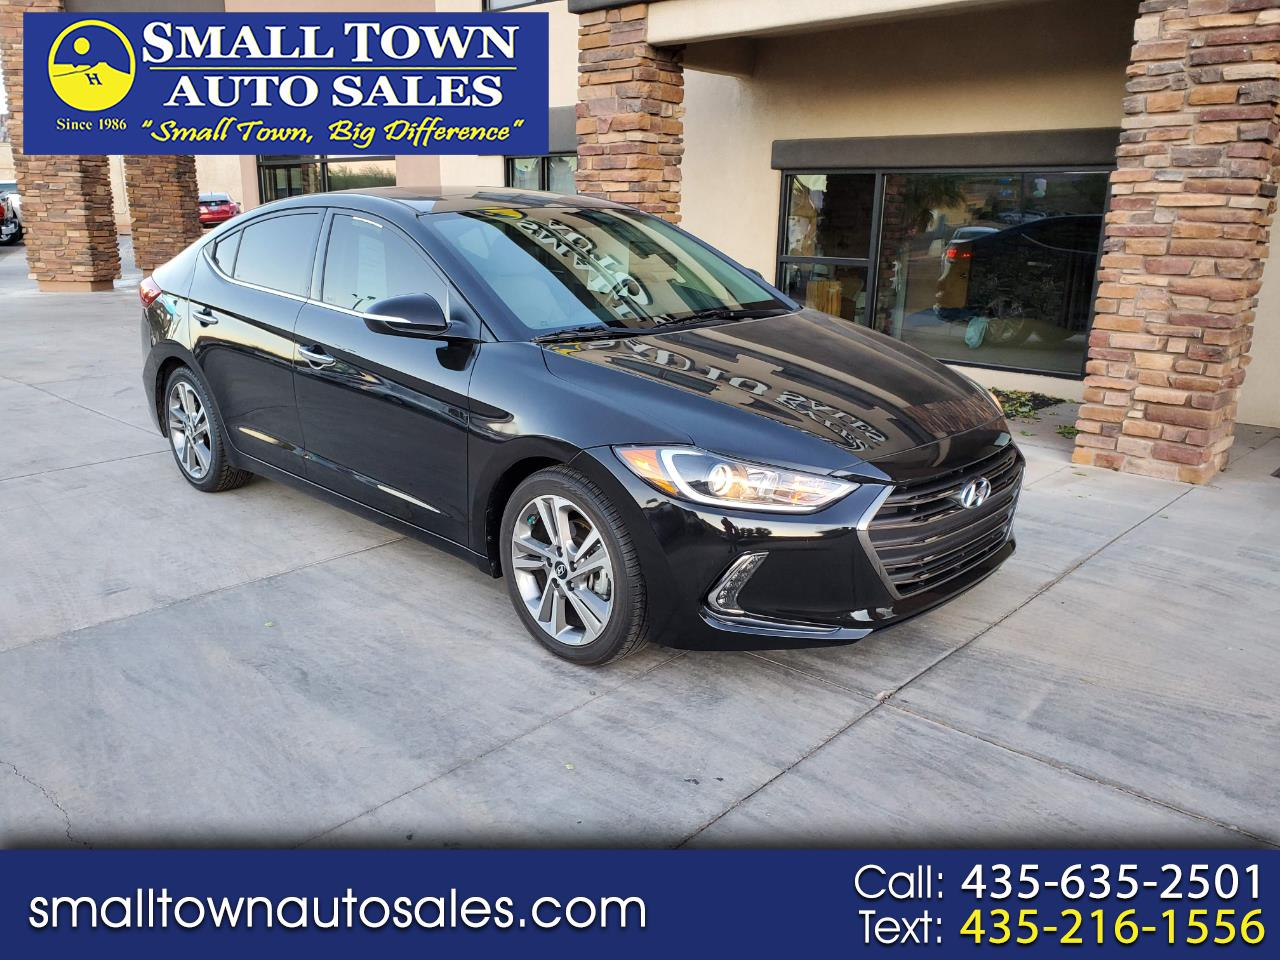 2017 Hyundai Elantra Limited 2.0L Auto (Alabama) *Ltd Avail*